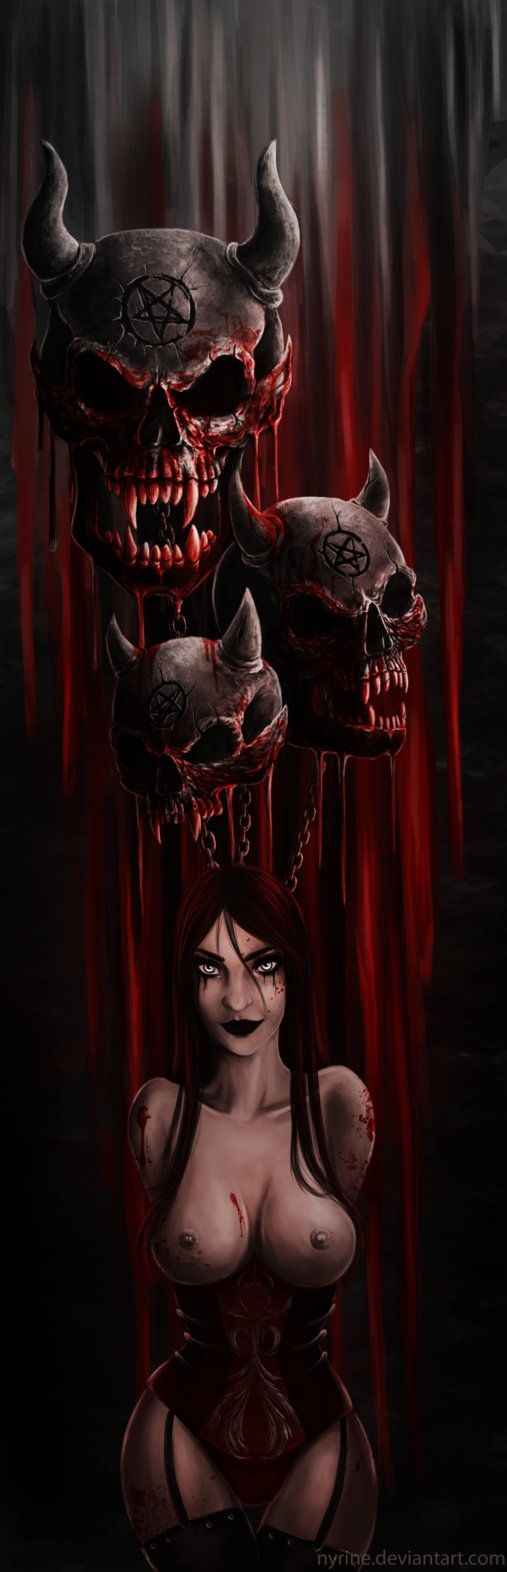 Bloody Balloons by Nyrine